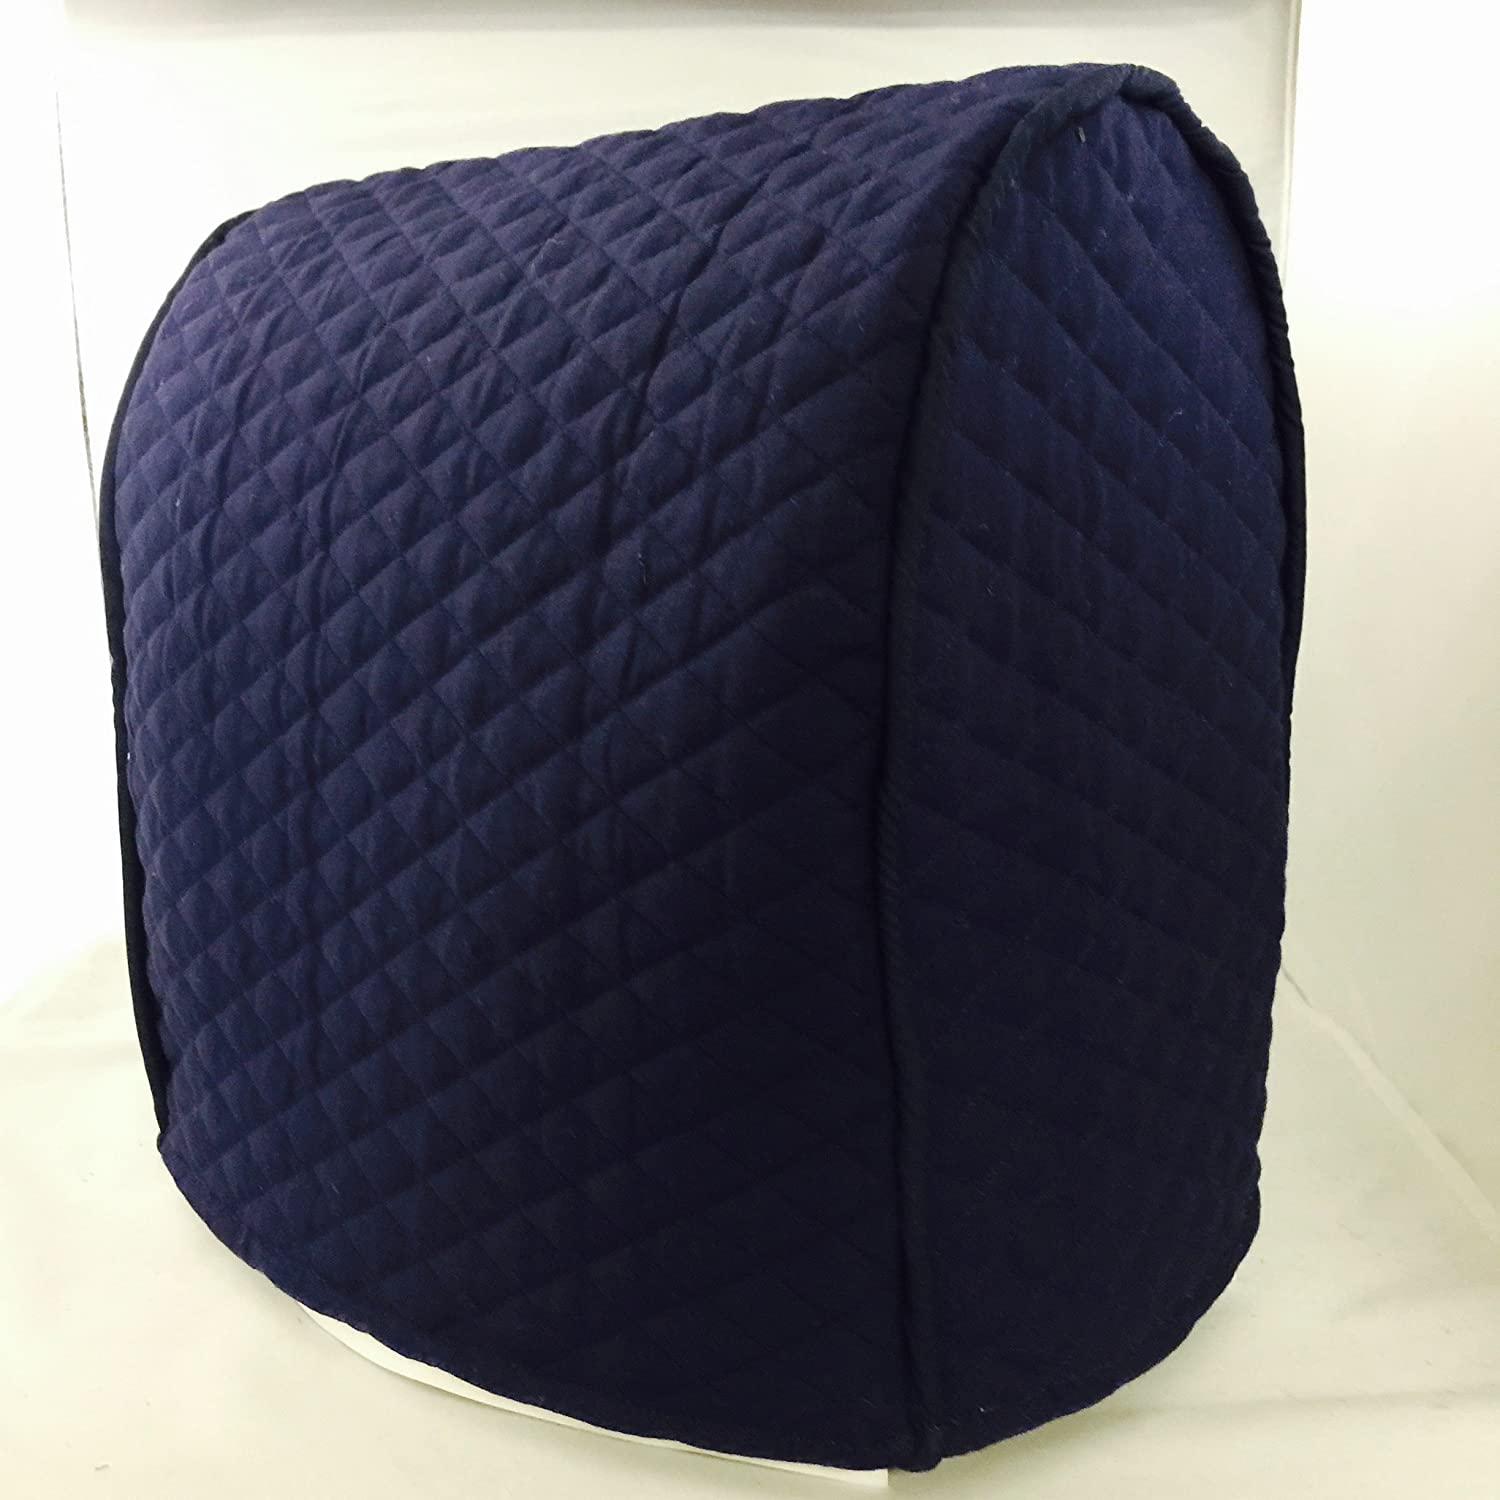 Simple Home Inspirations Navy Cover Compatible for Kitchenaid Stand Mixer, Tilt Head (Quilted Double Faced Cotton)